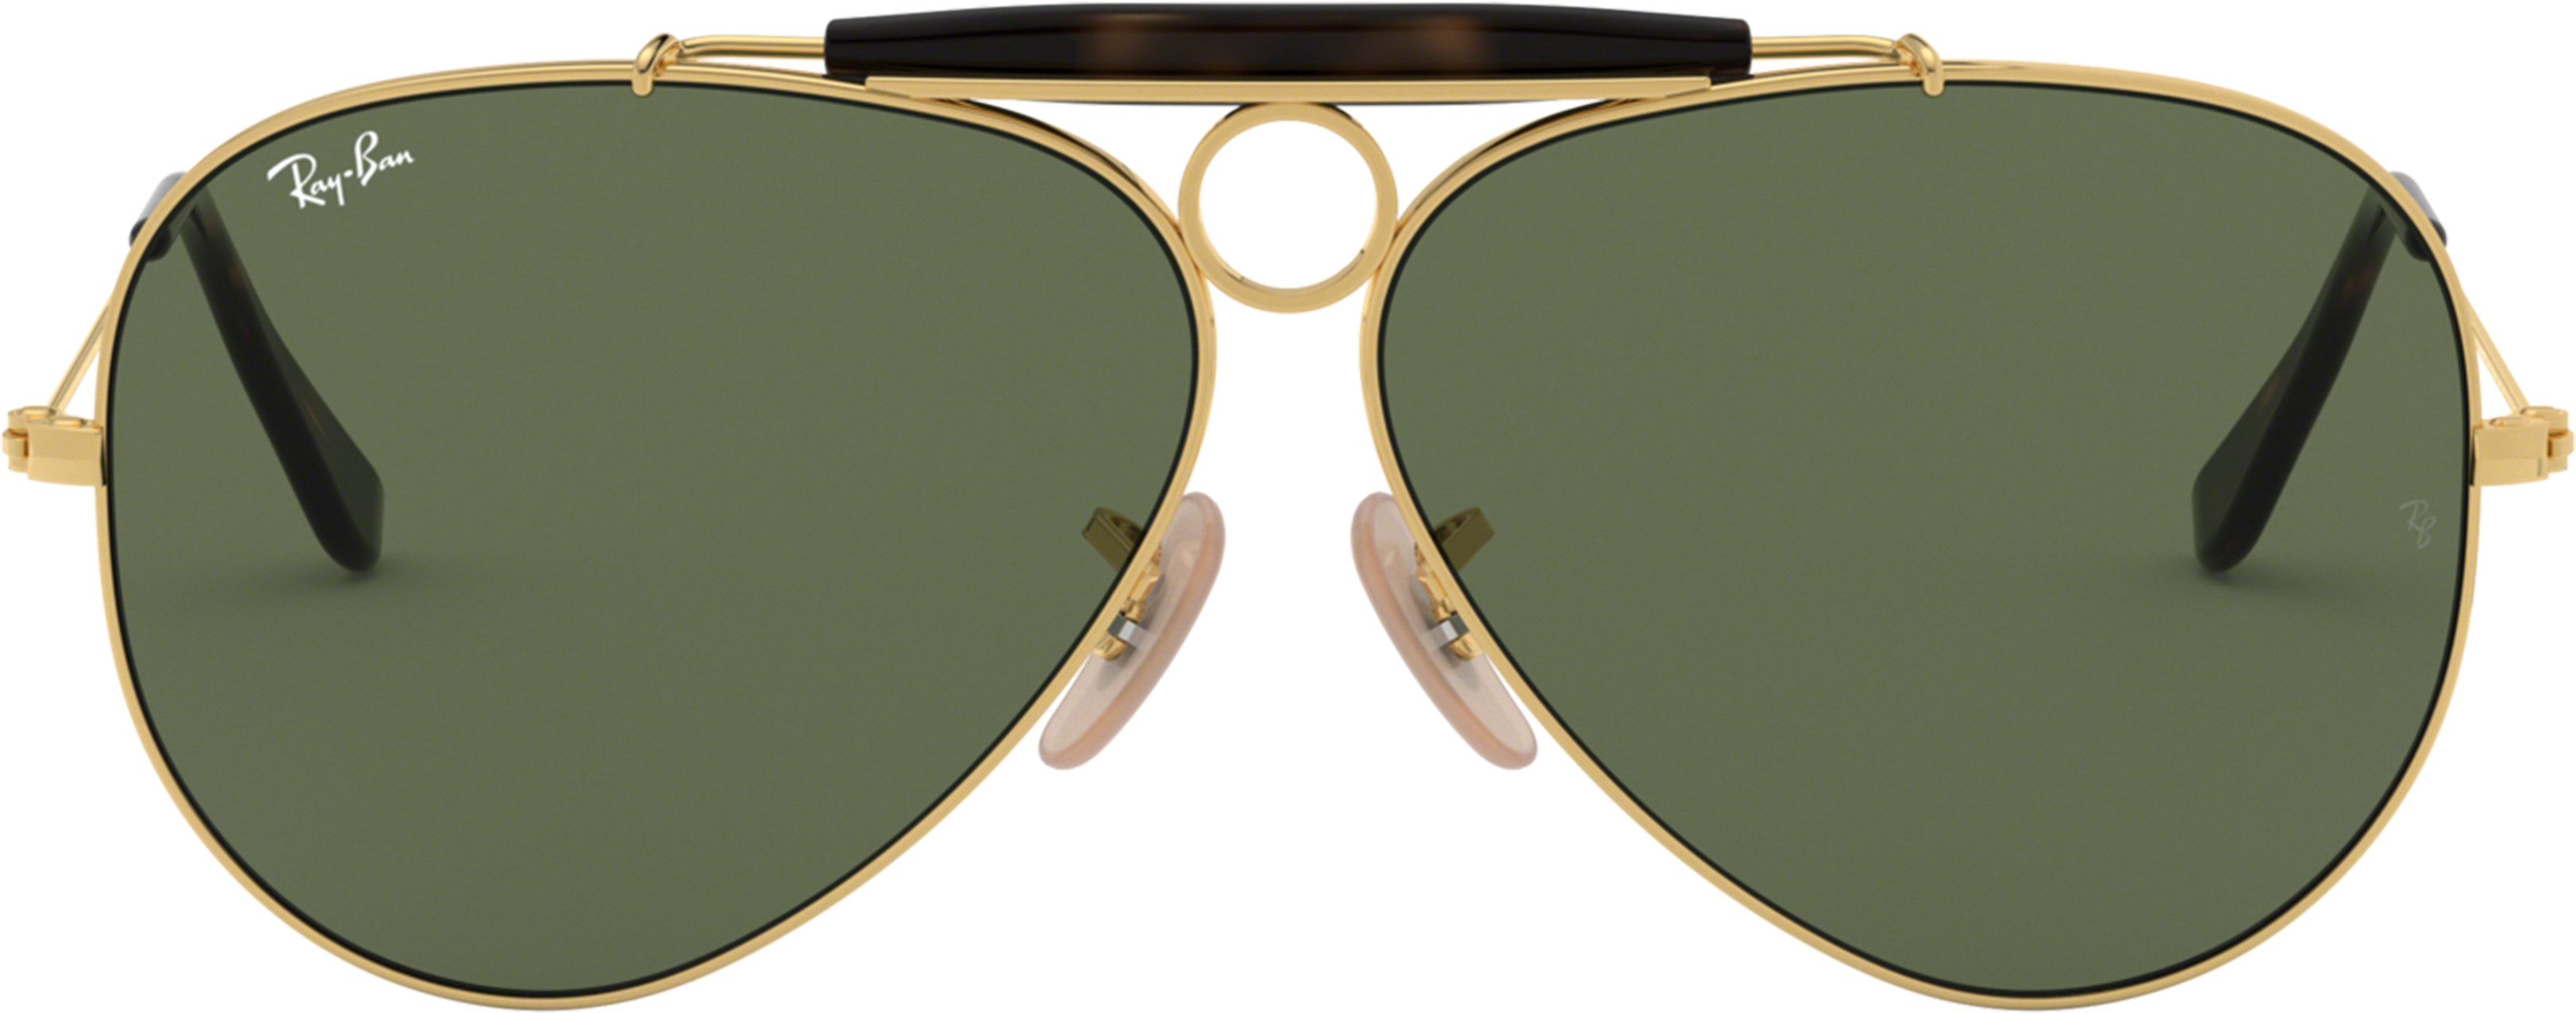 8053672494990_Front_RayBan